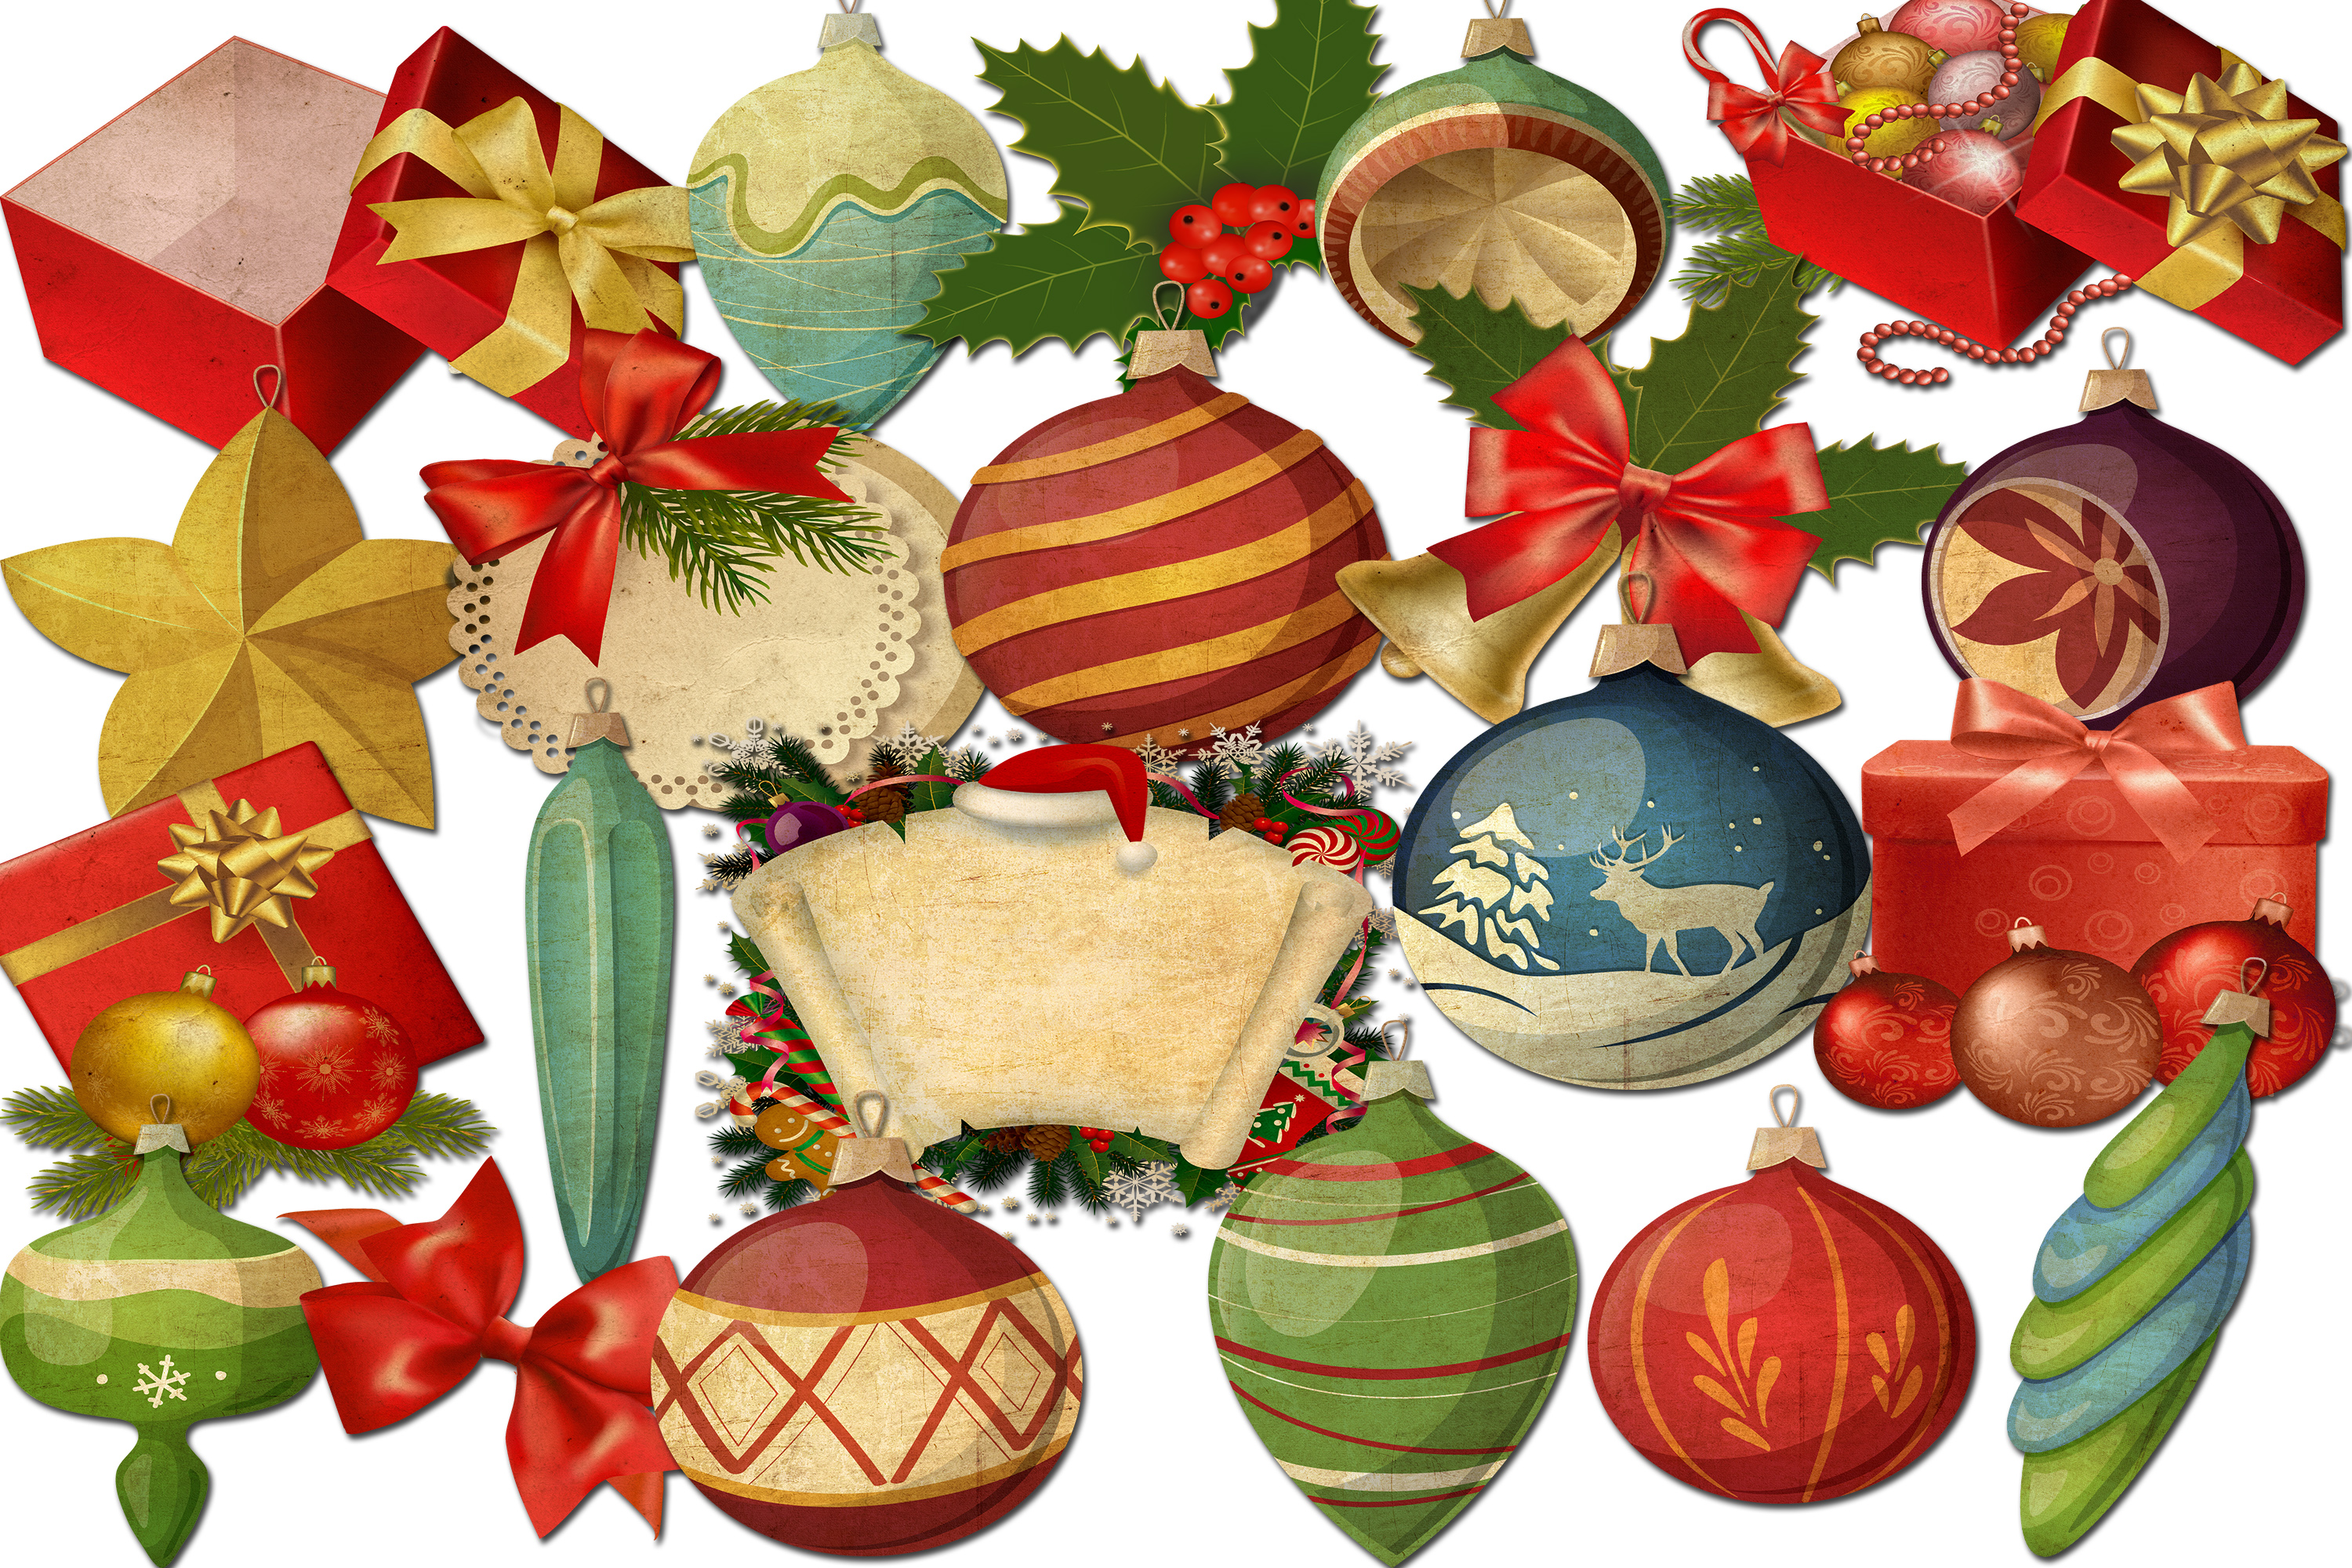 Download Free Christmas Ornaments Clip Art Graphic By Retrowalldecor for Cricut Explore, Silhouette and other cutting machines.